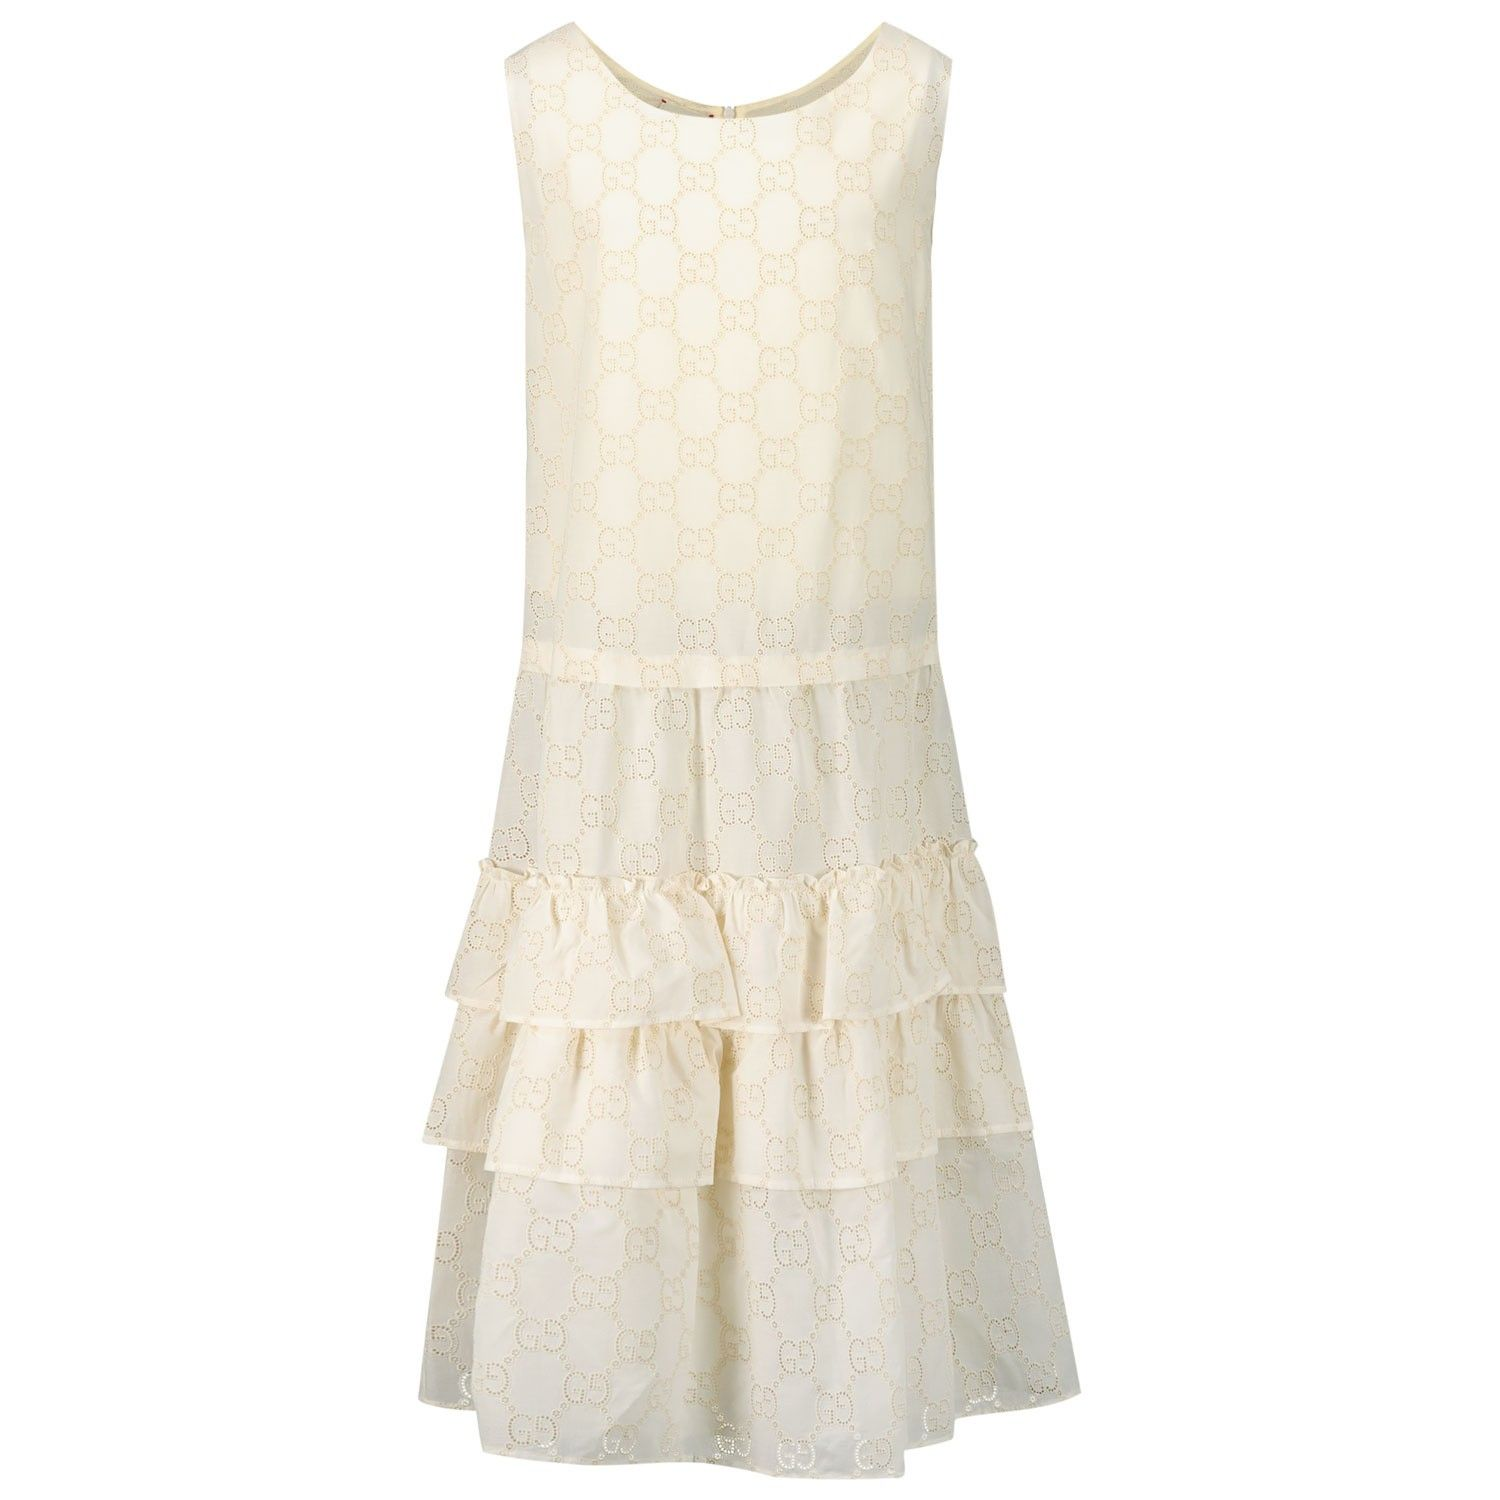 Picture of Gucci 595345 kids dress off white